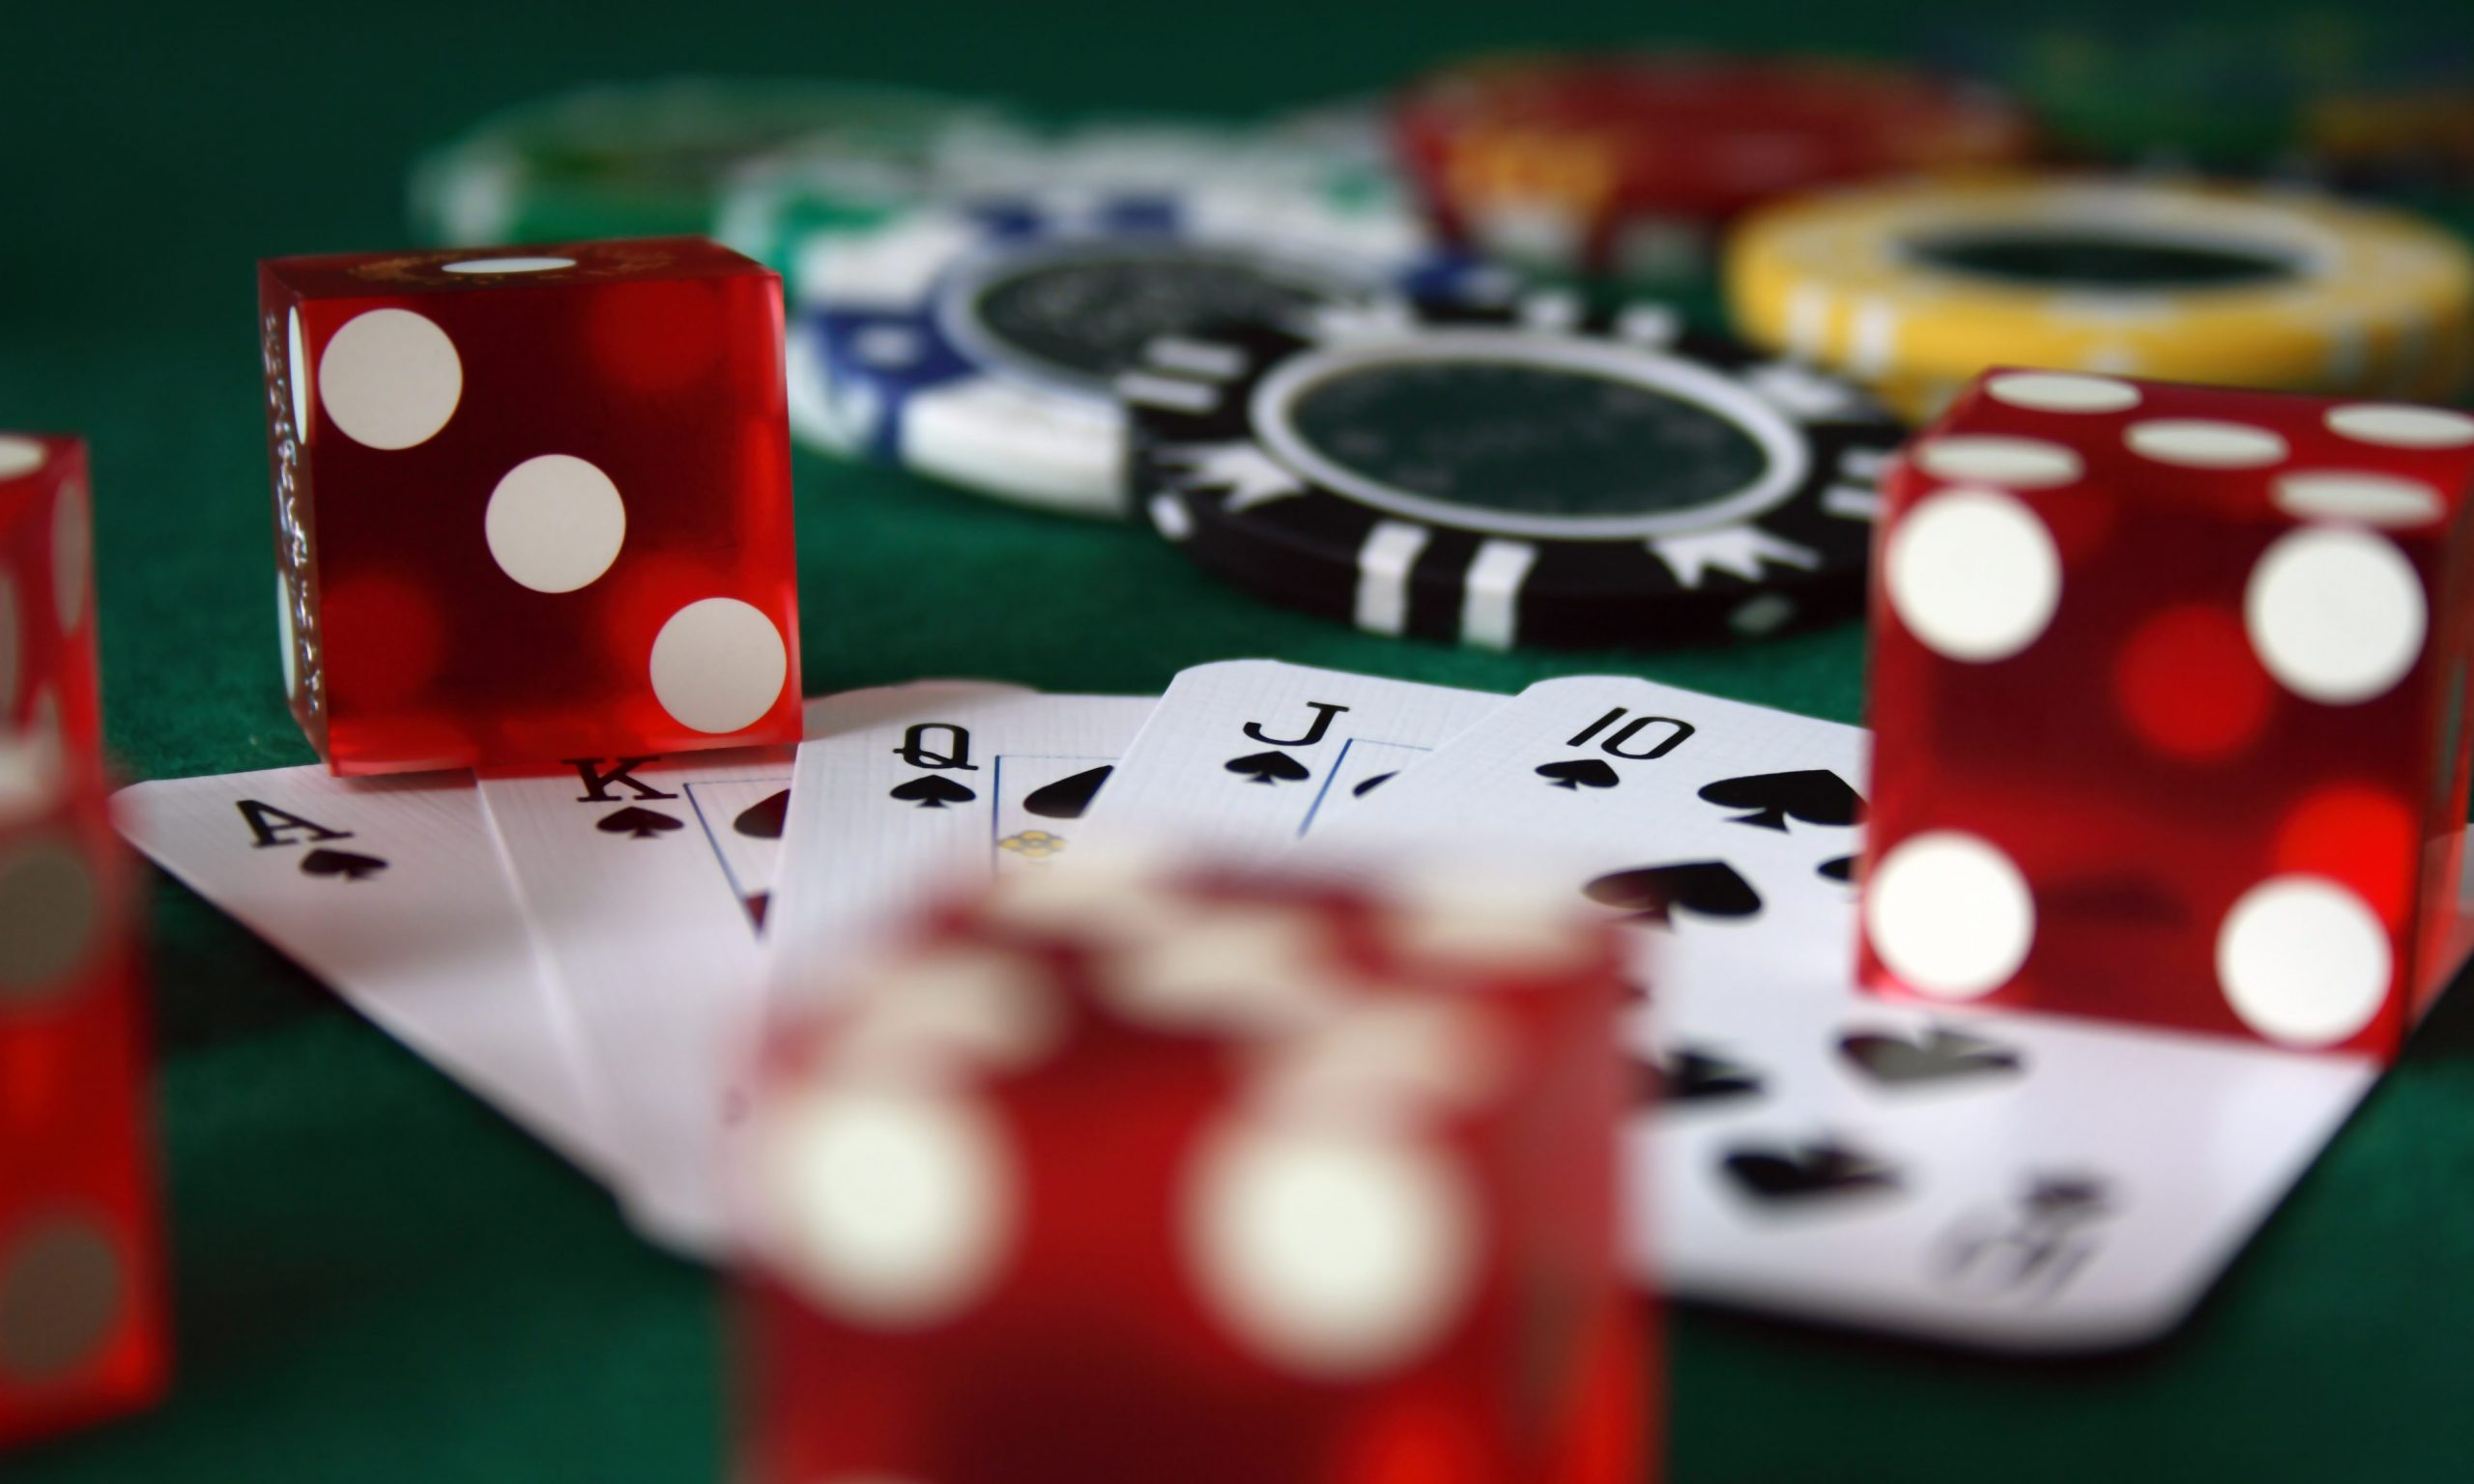 Our Honest Look At The Poker Room Of 888